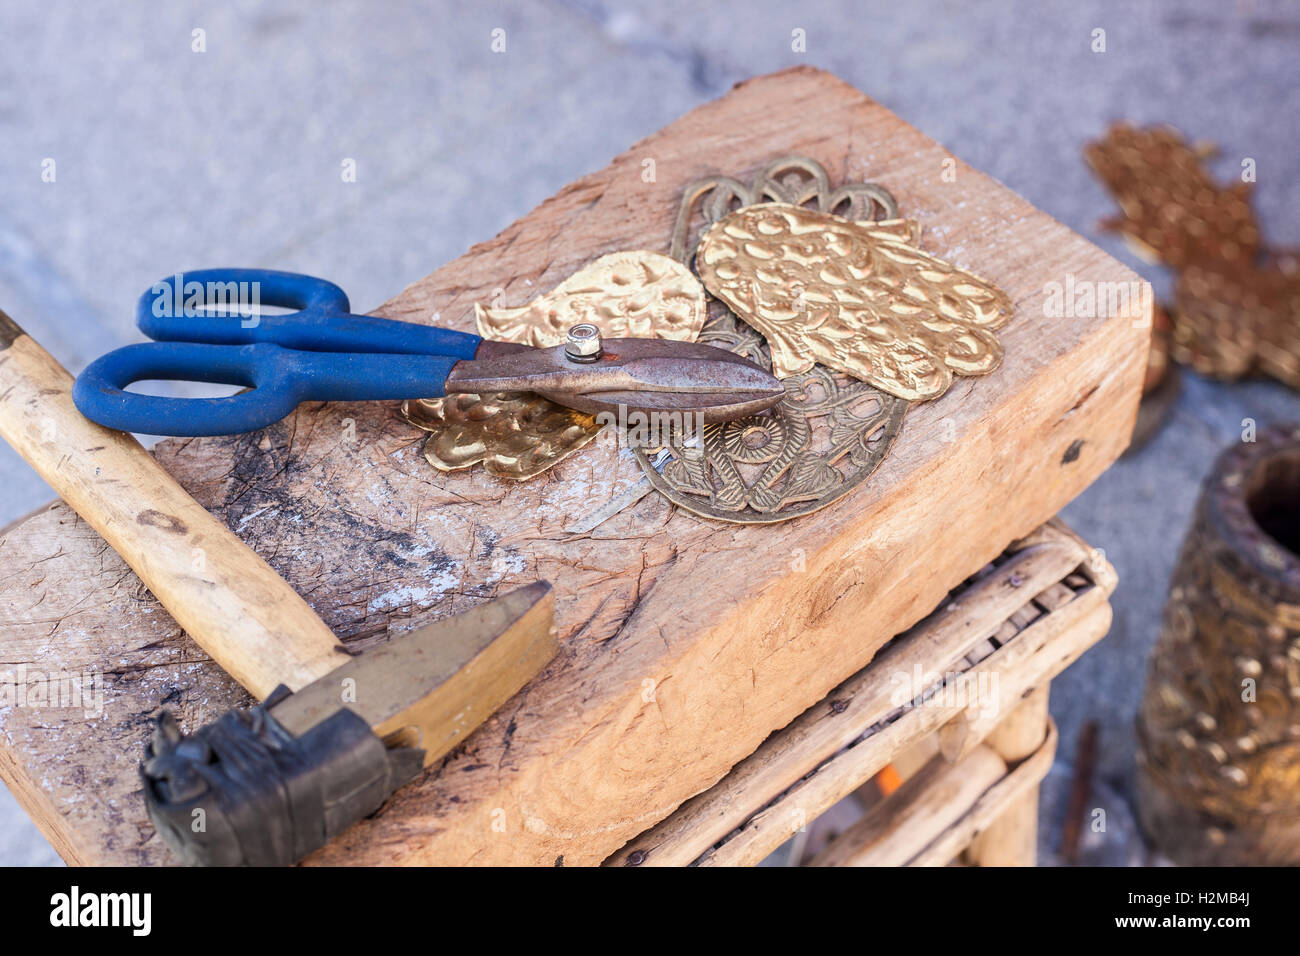 Craftsman bench with tools for engrave hamsa palm-shaped brass amulets - Stock Image